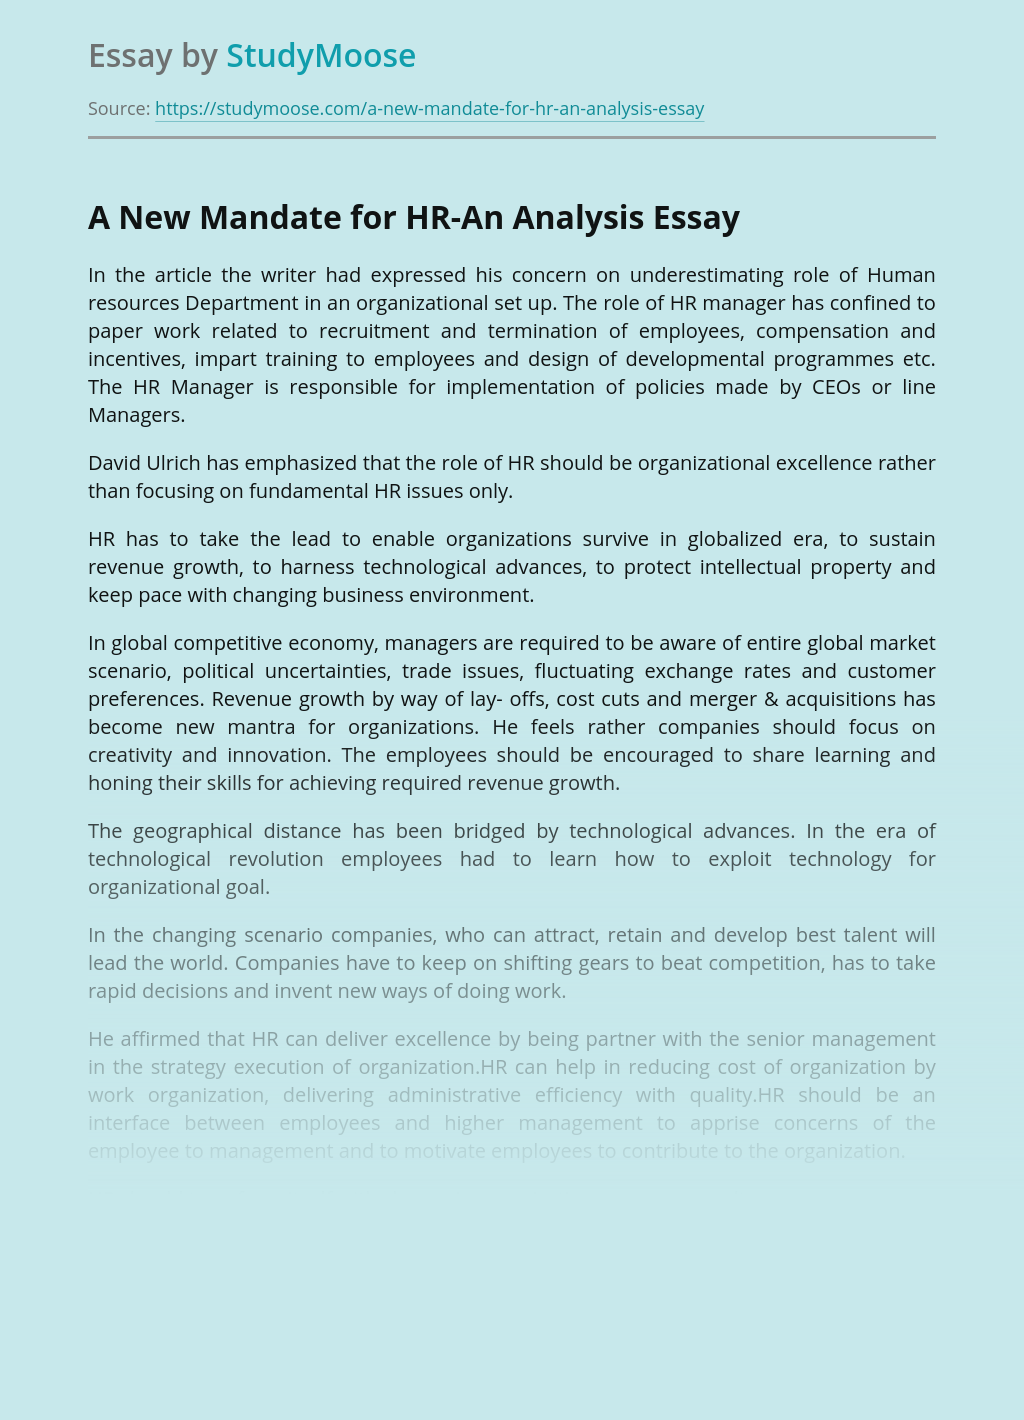 A New Mandate for HR-An Analysis